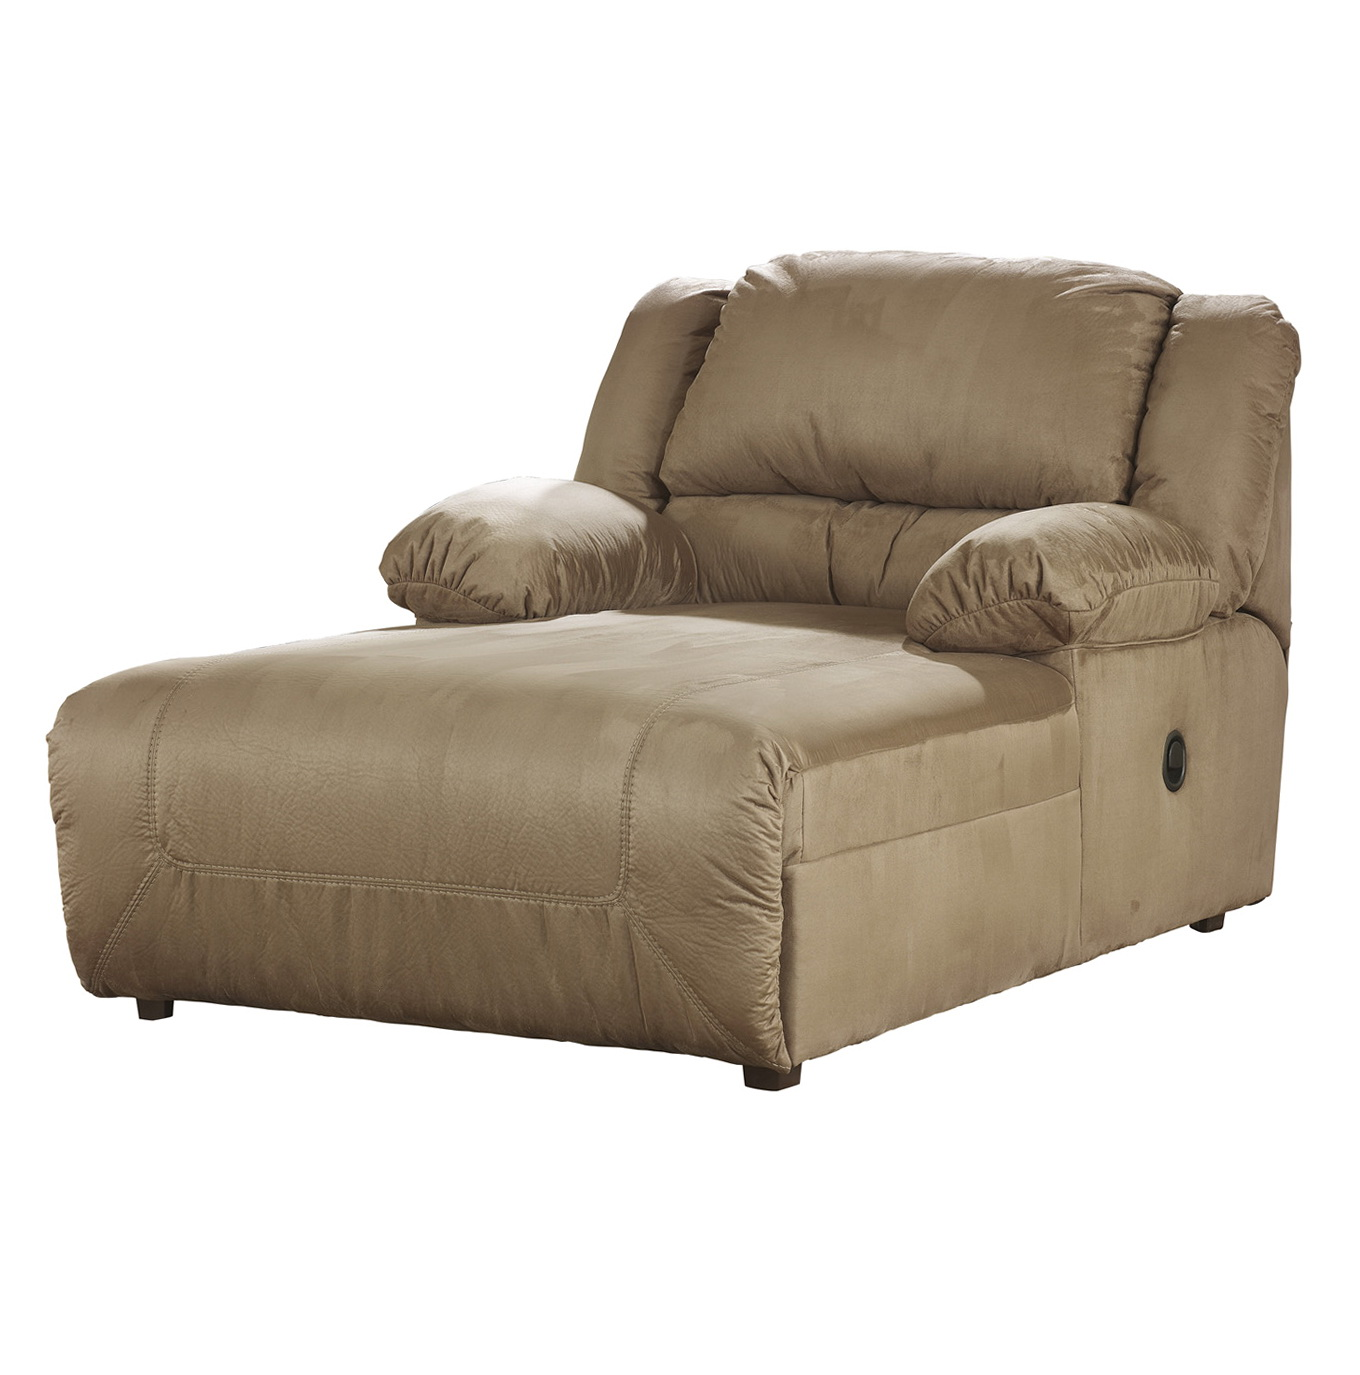 Ashley furniture chaise lounge couch home design ideas for Ashley chaise lounge recliner